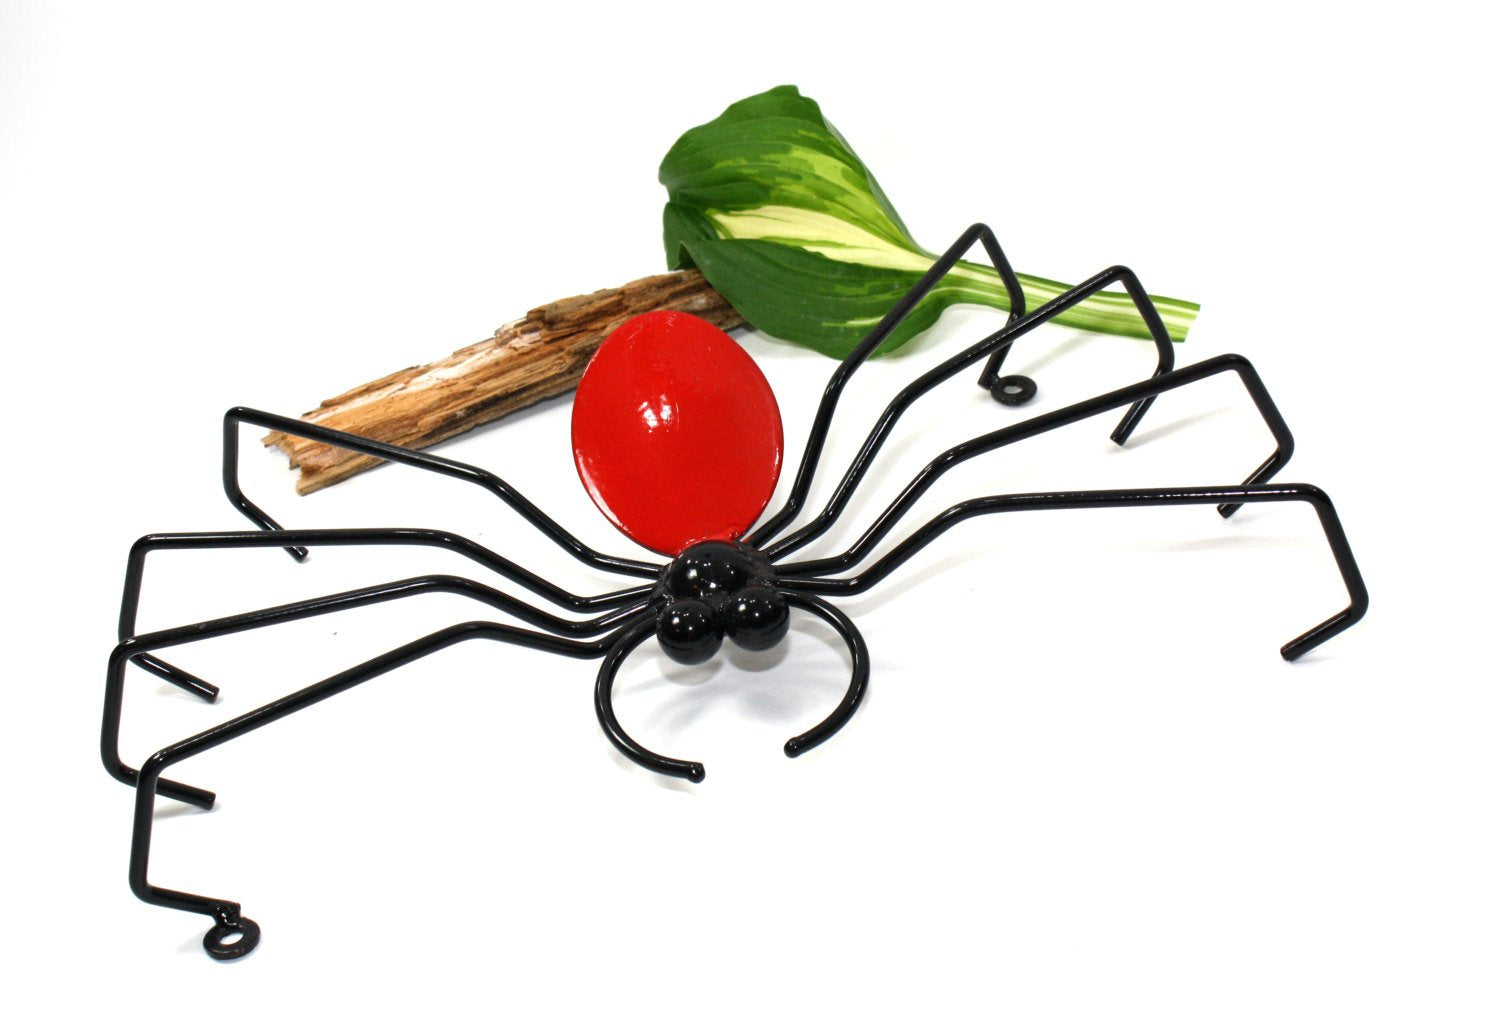 Large Red Metal Spiders/Arachnids for Home, Yard Garden Decoration